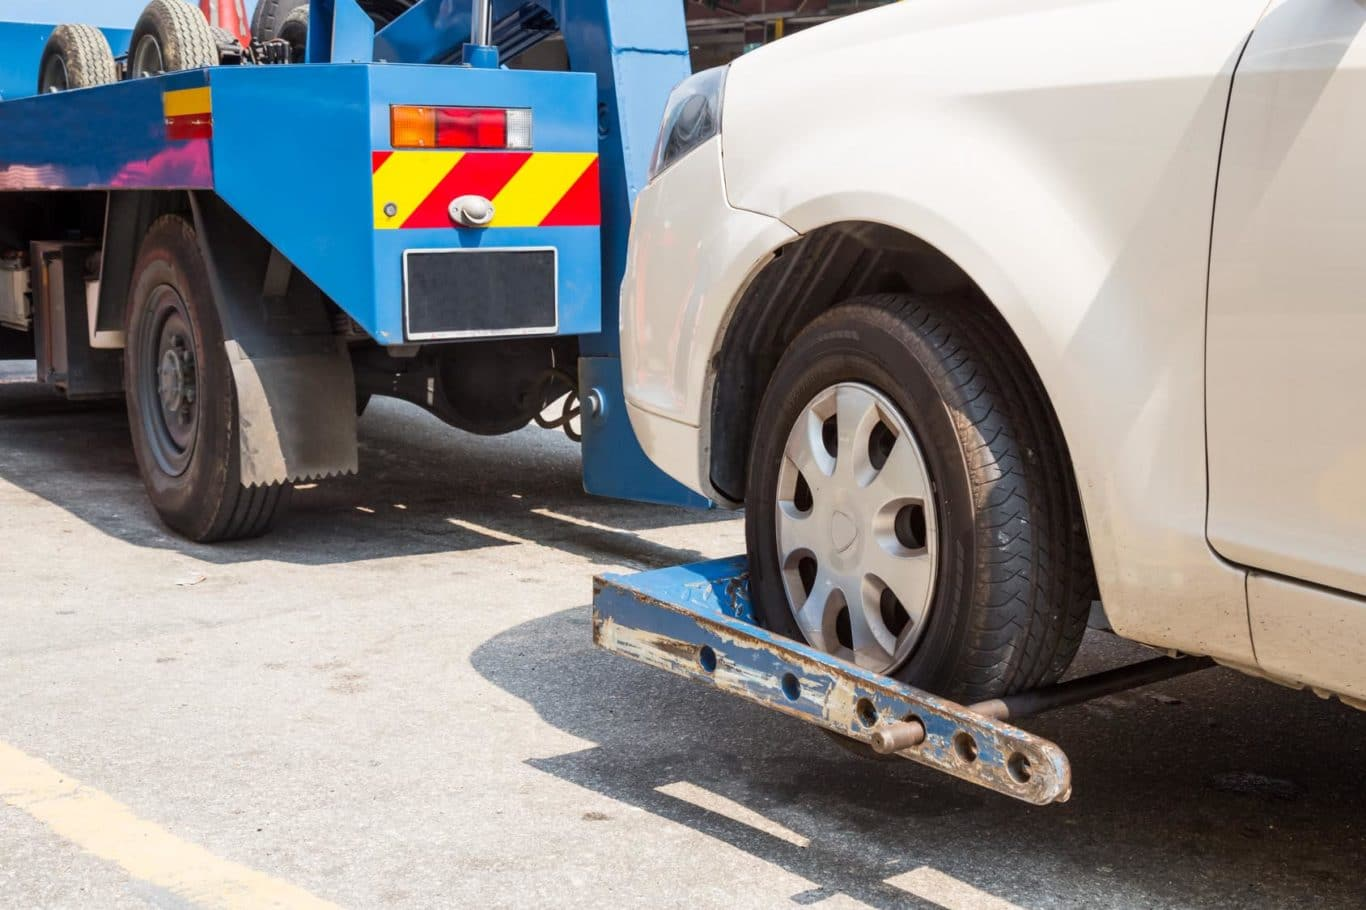 Bellewstown expert Breakdown Assistance services